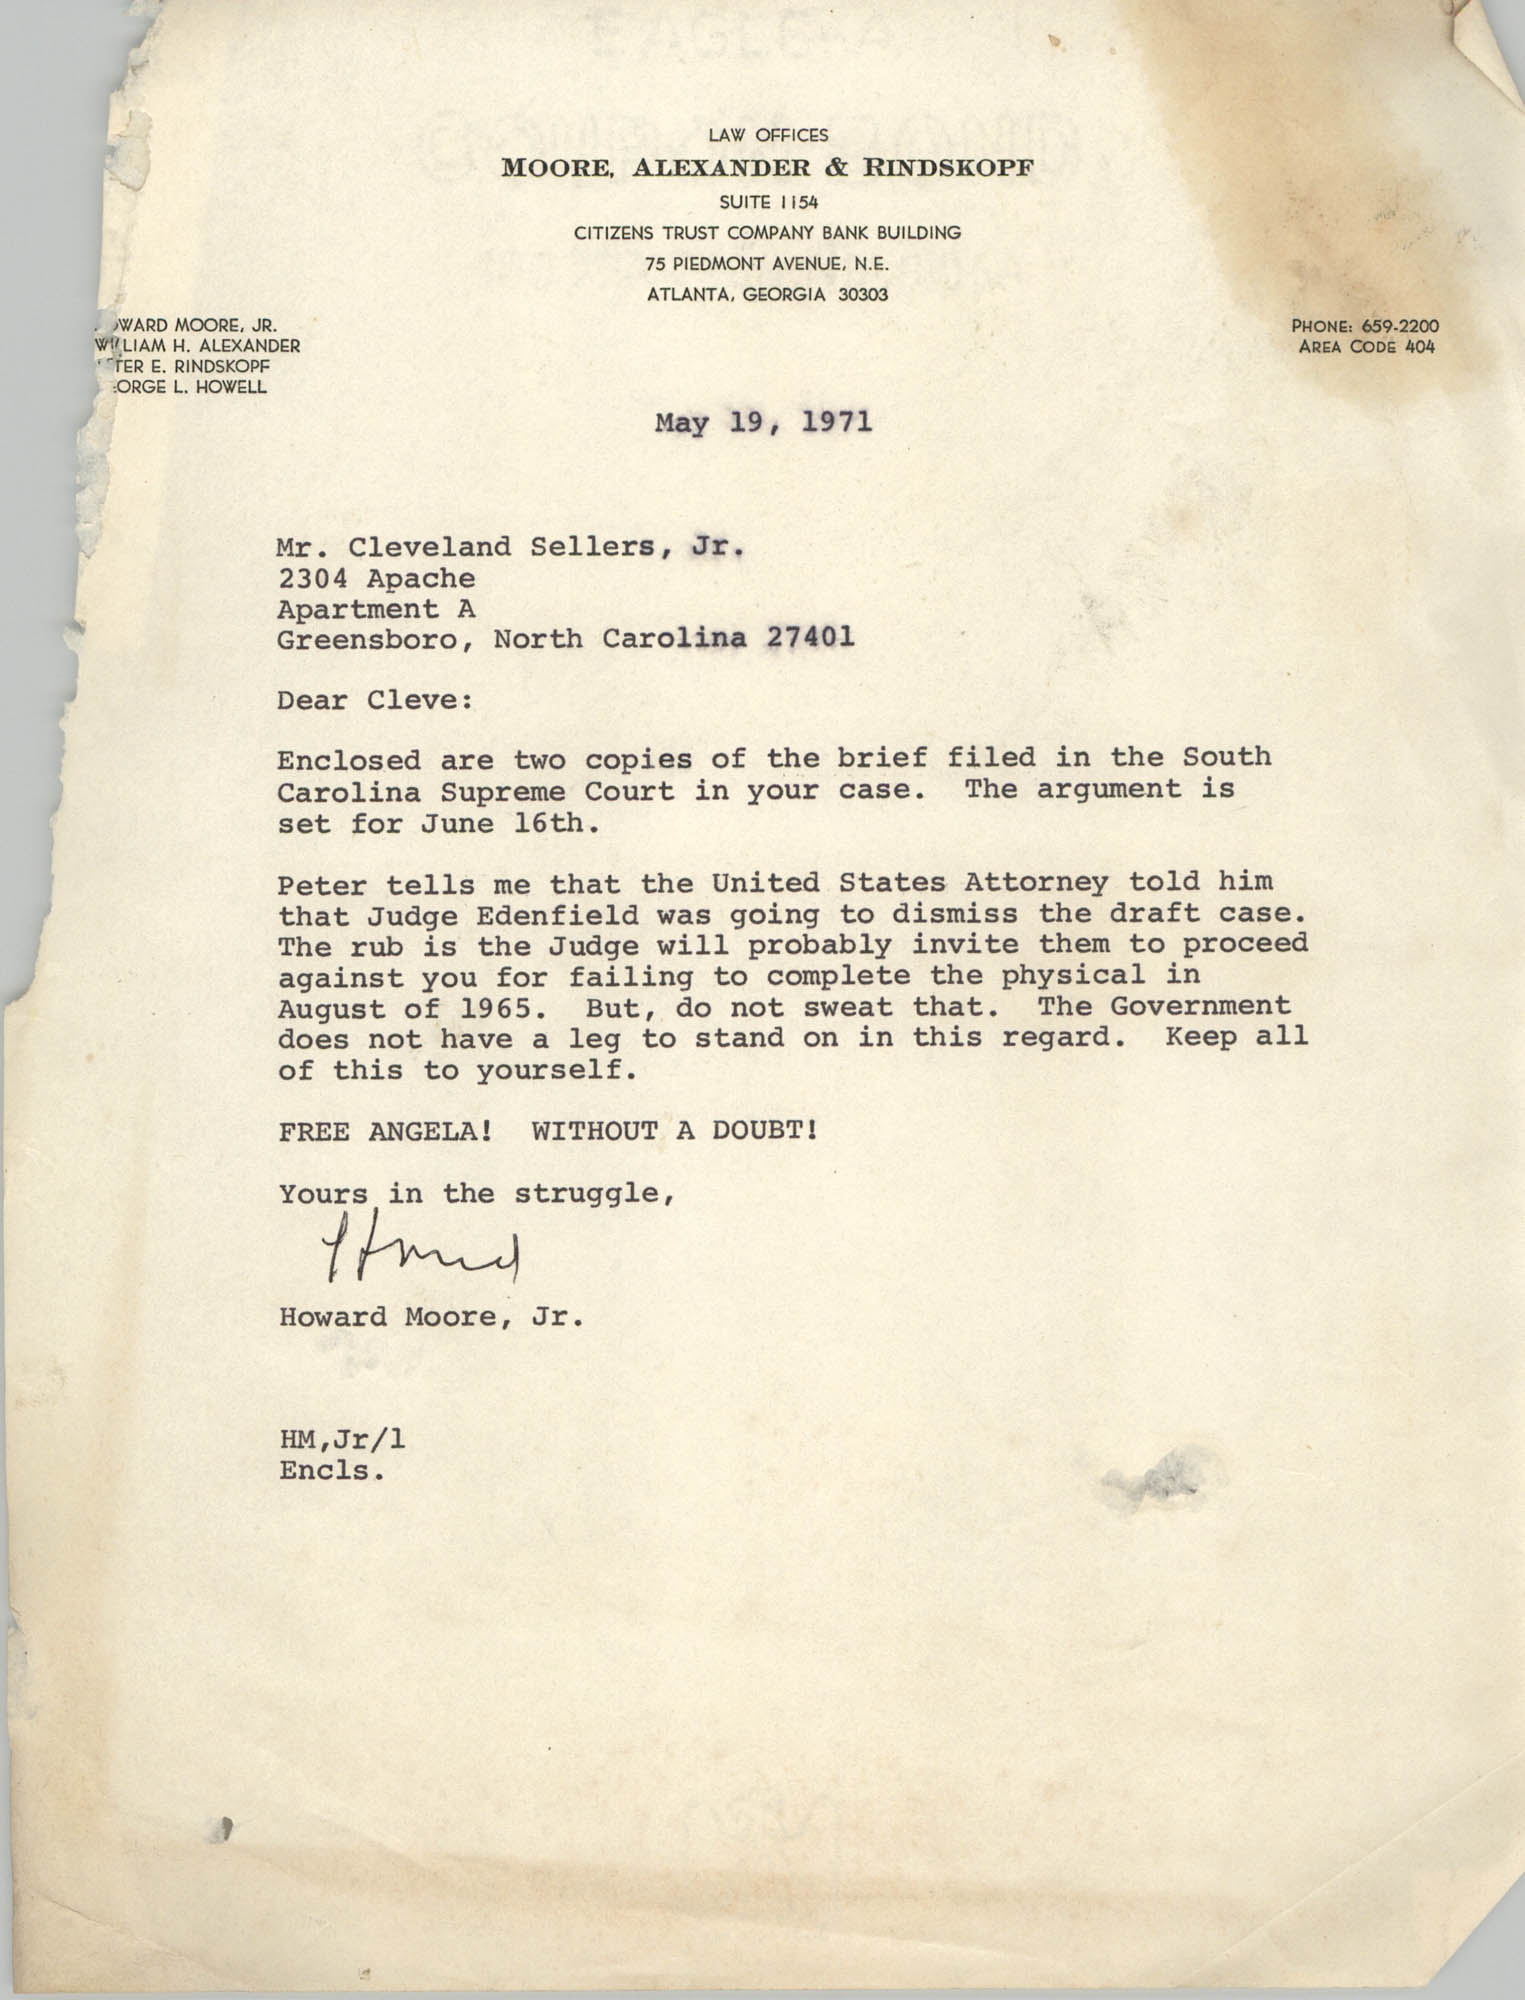 Letter from Howard Moore, Jr. to Cleveland Sellers, May 19, 1971